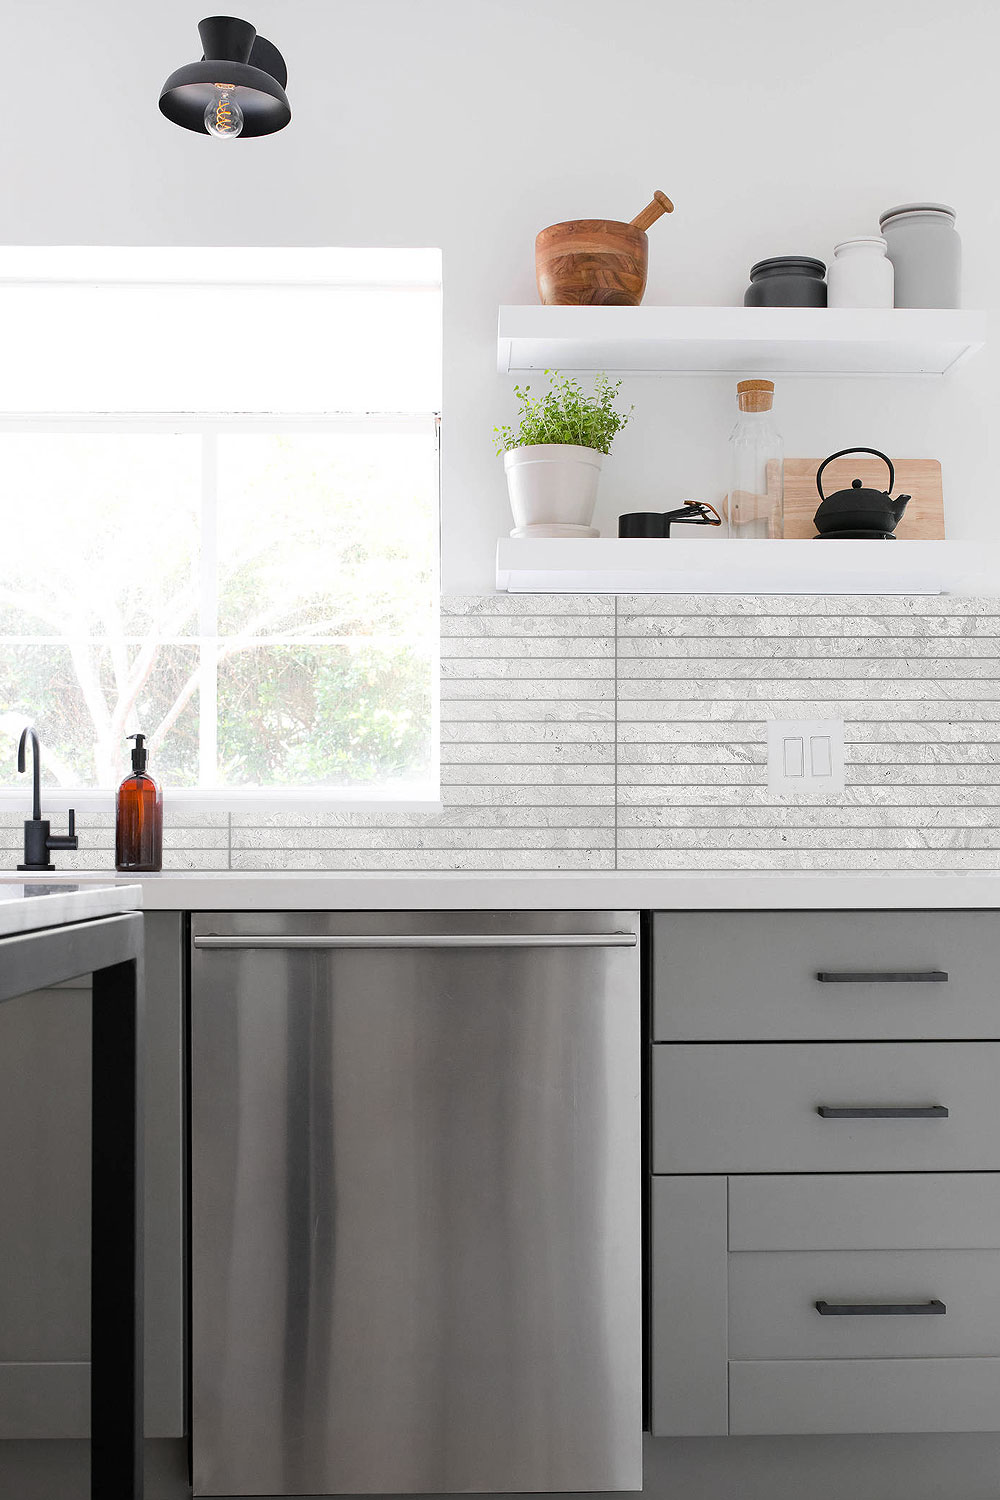 Elegant Gray And White Kitchen With Backsplash Tile